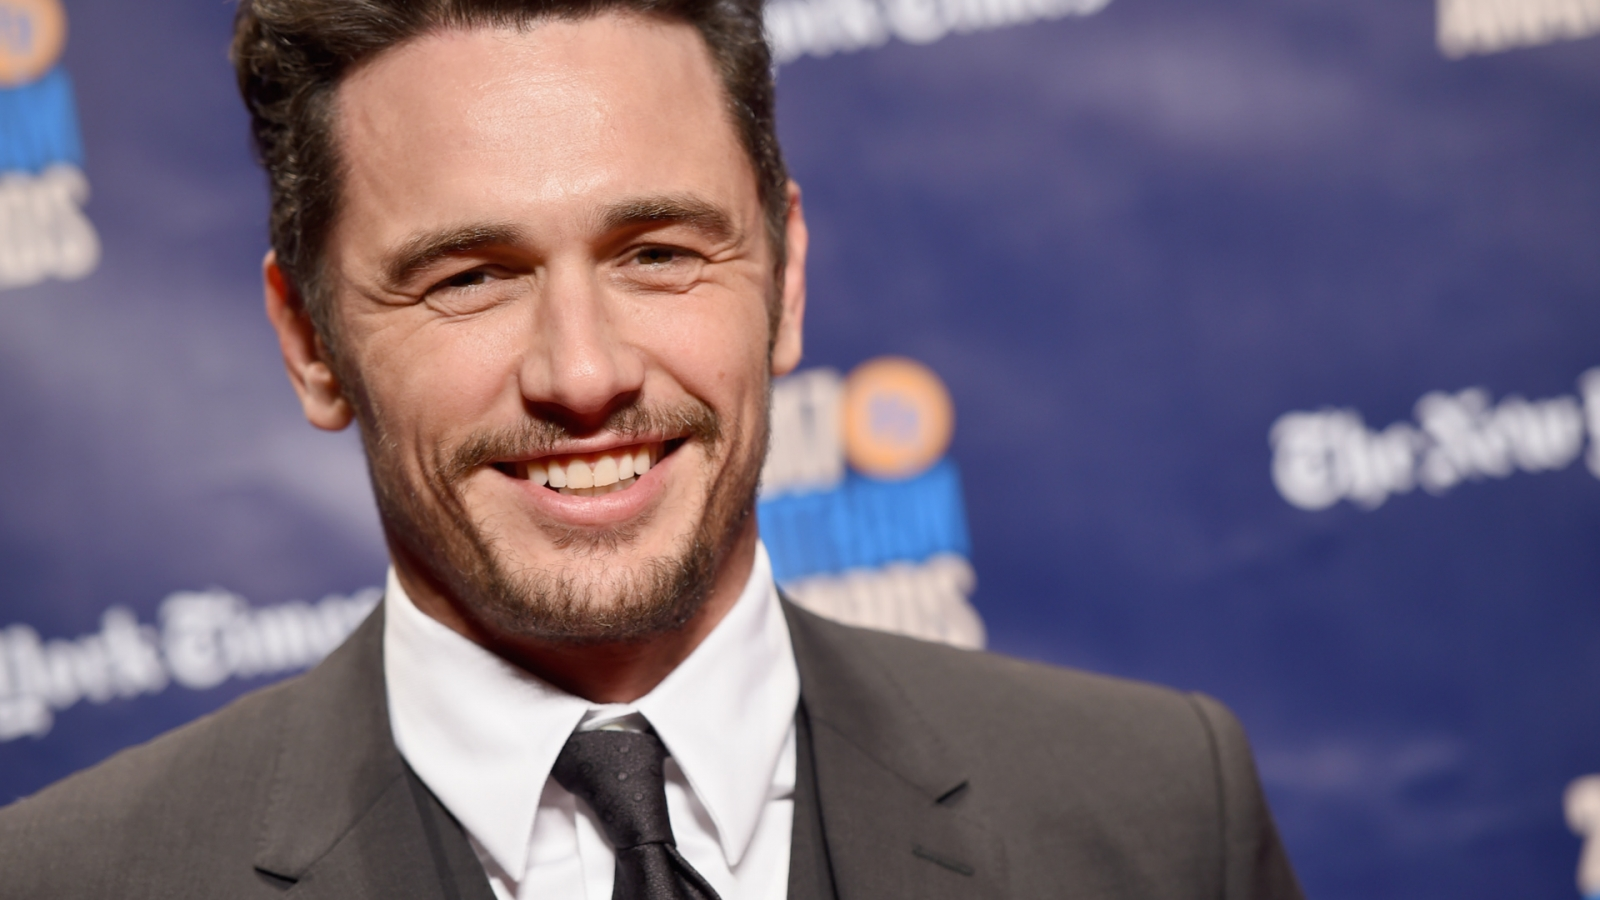 James Franco Says Sexual Misconduct Allegations 'Not Accurate'